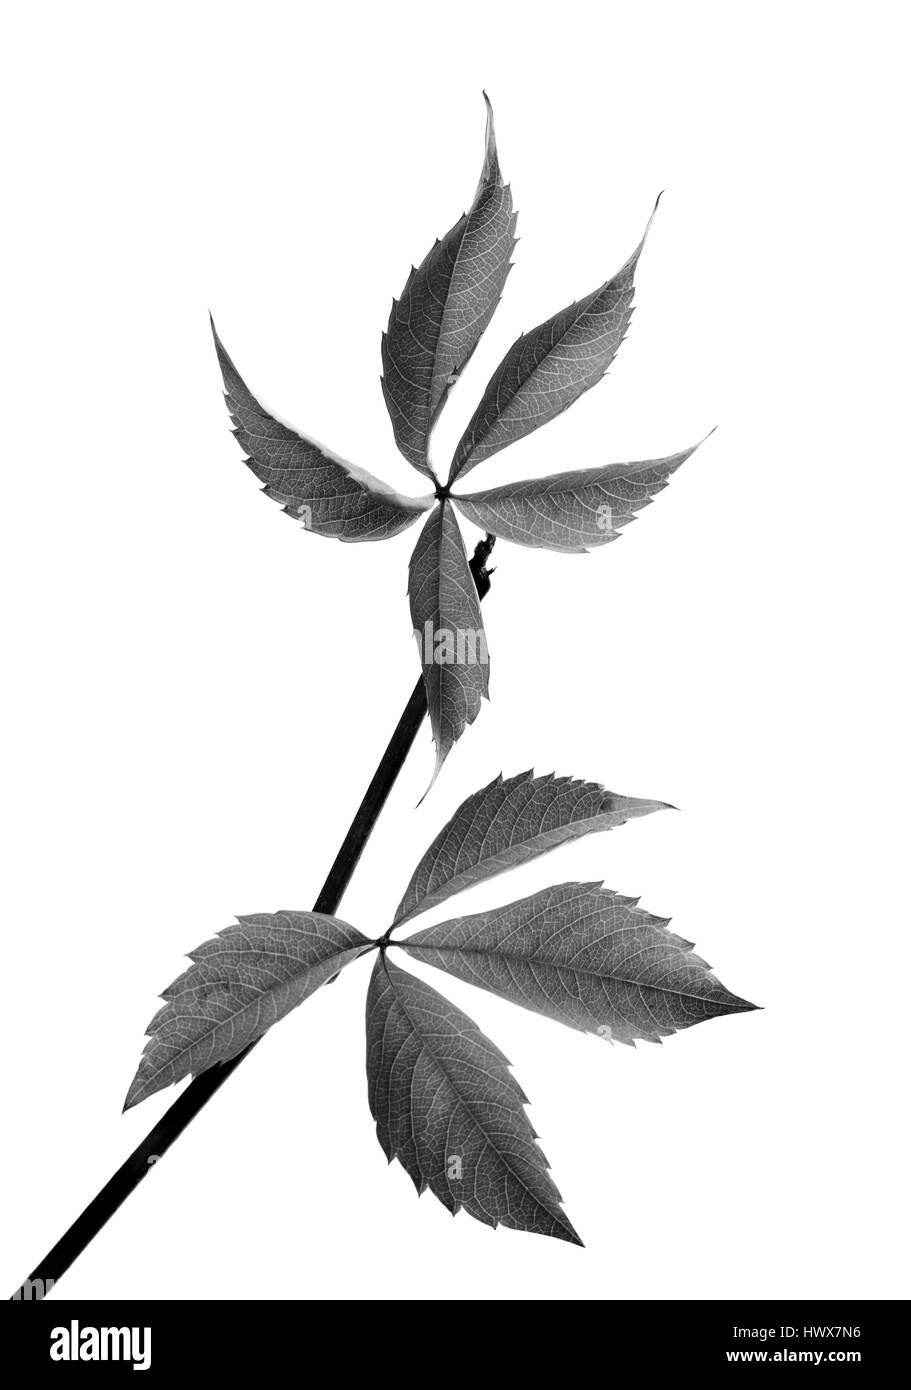 Black and white twig of grapes leaves (Parthenocissus quinquefolia foliage). Isolated on white background. - Stock Image